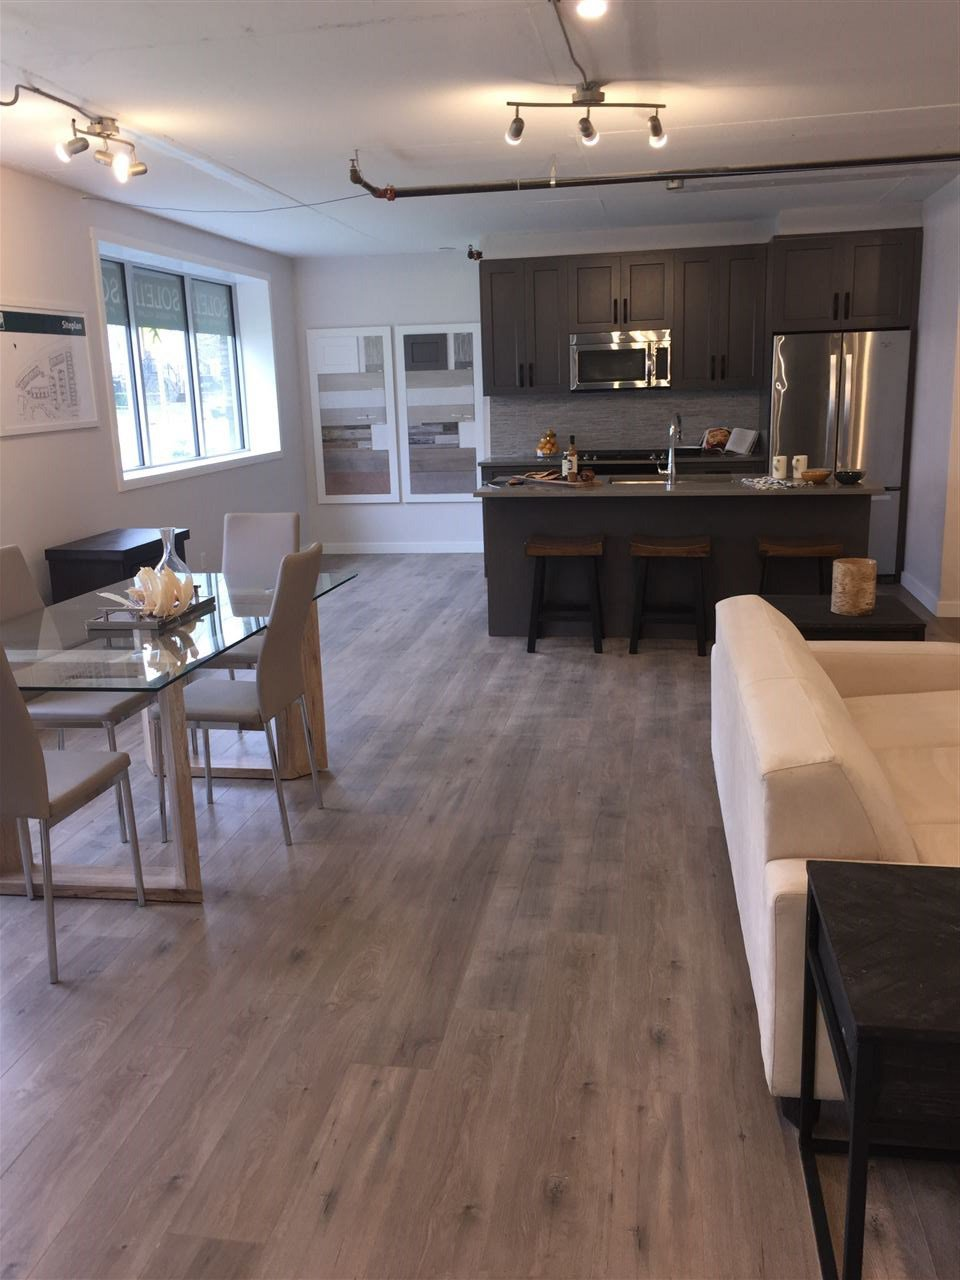 "Photo 4: Photos: 74 1188 MAIN Street in Squamish: Downtown SQ Condo for sale in ""SOLEIL AT COASTAL VILLAGE"" : MLS®# R2123052"